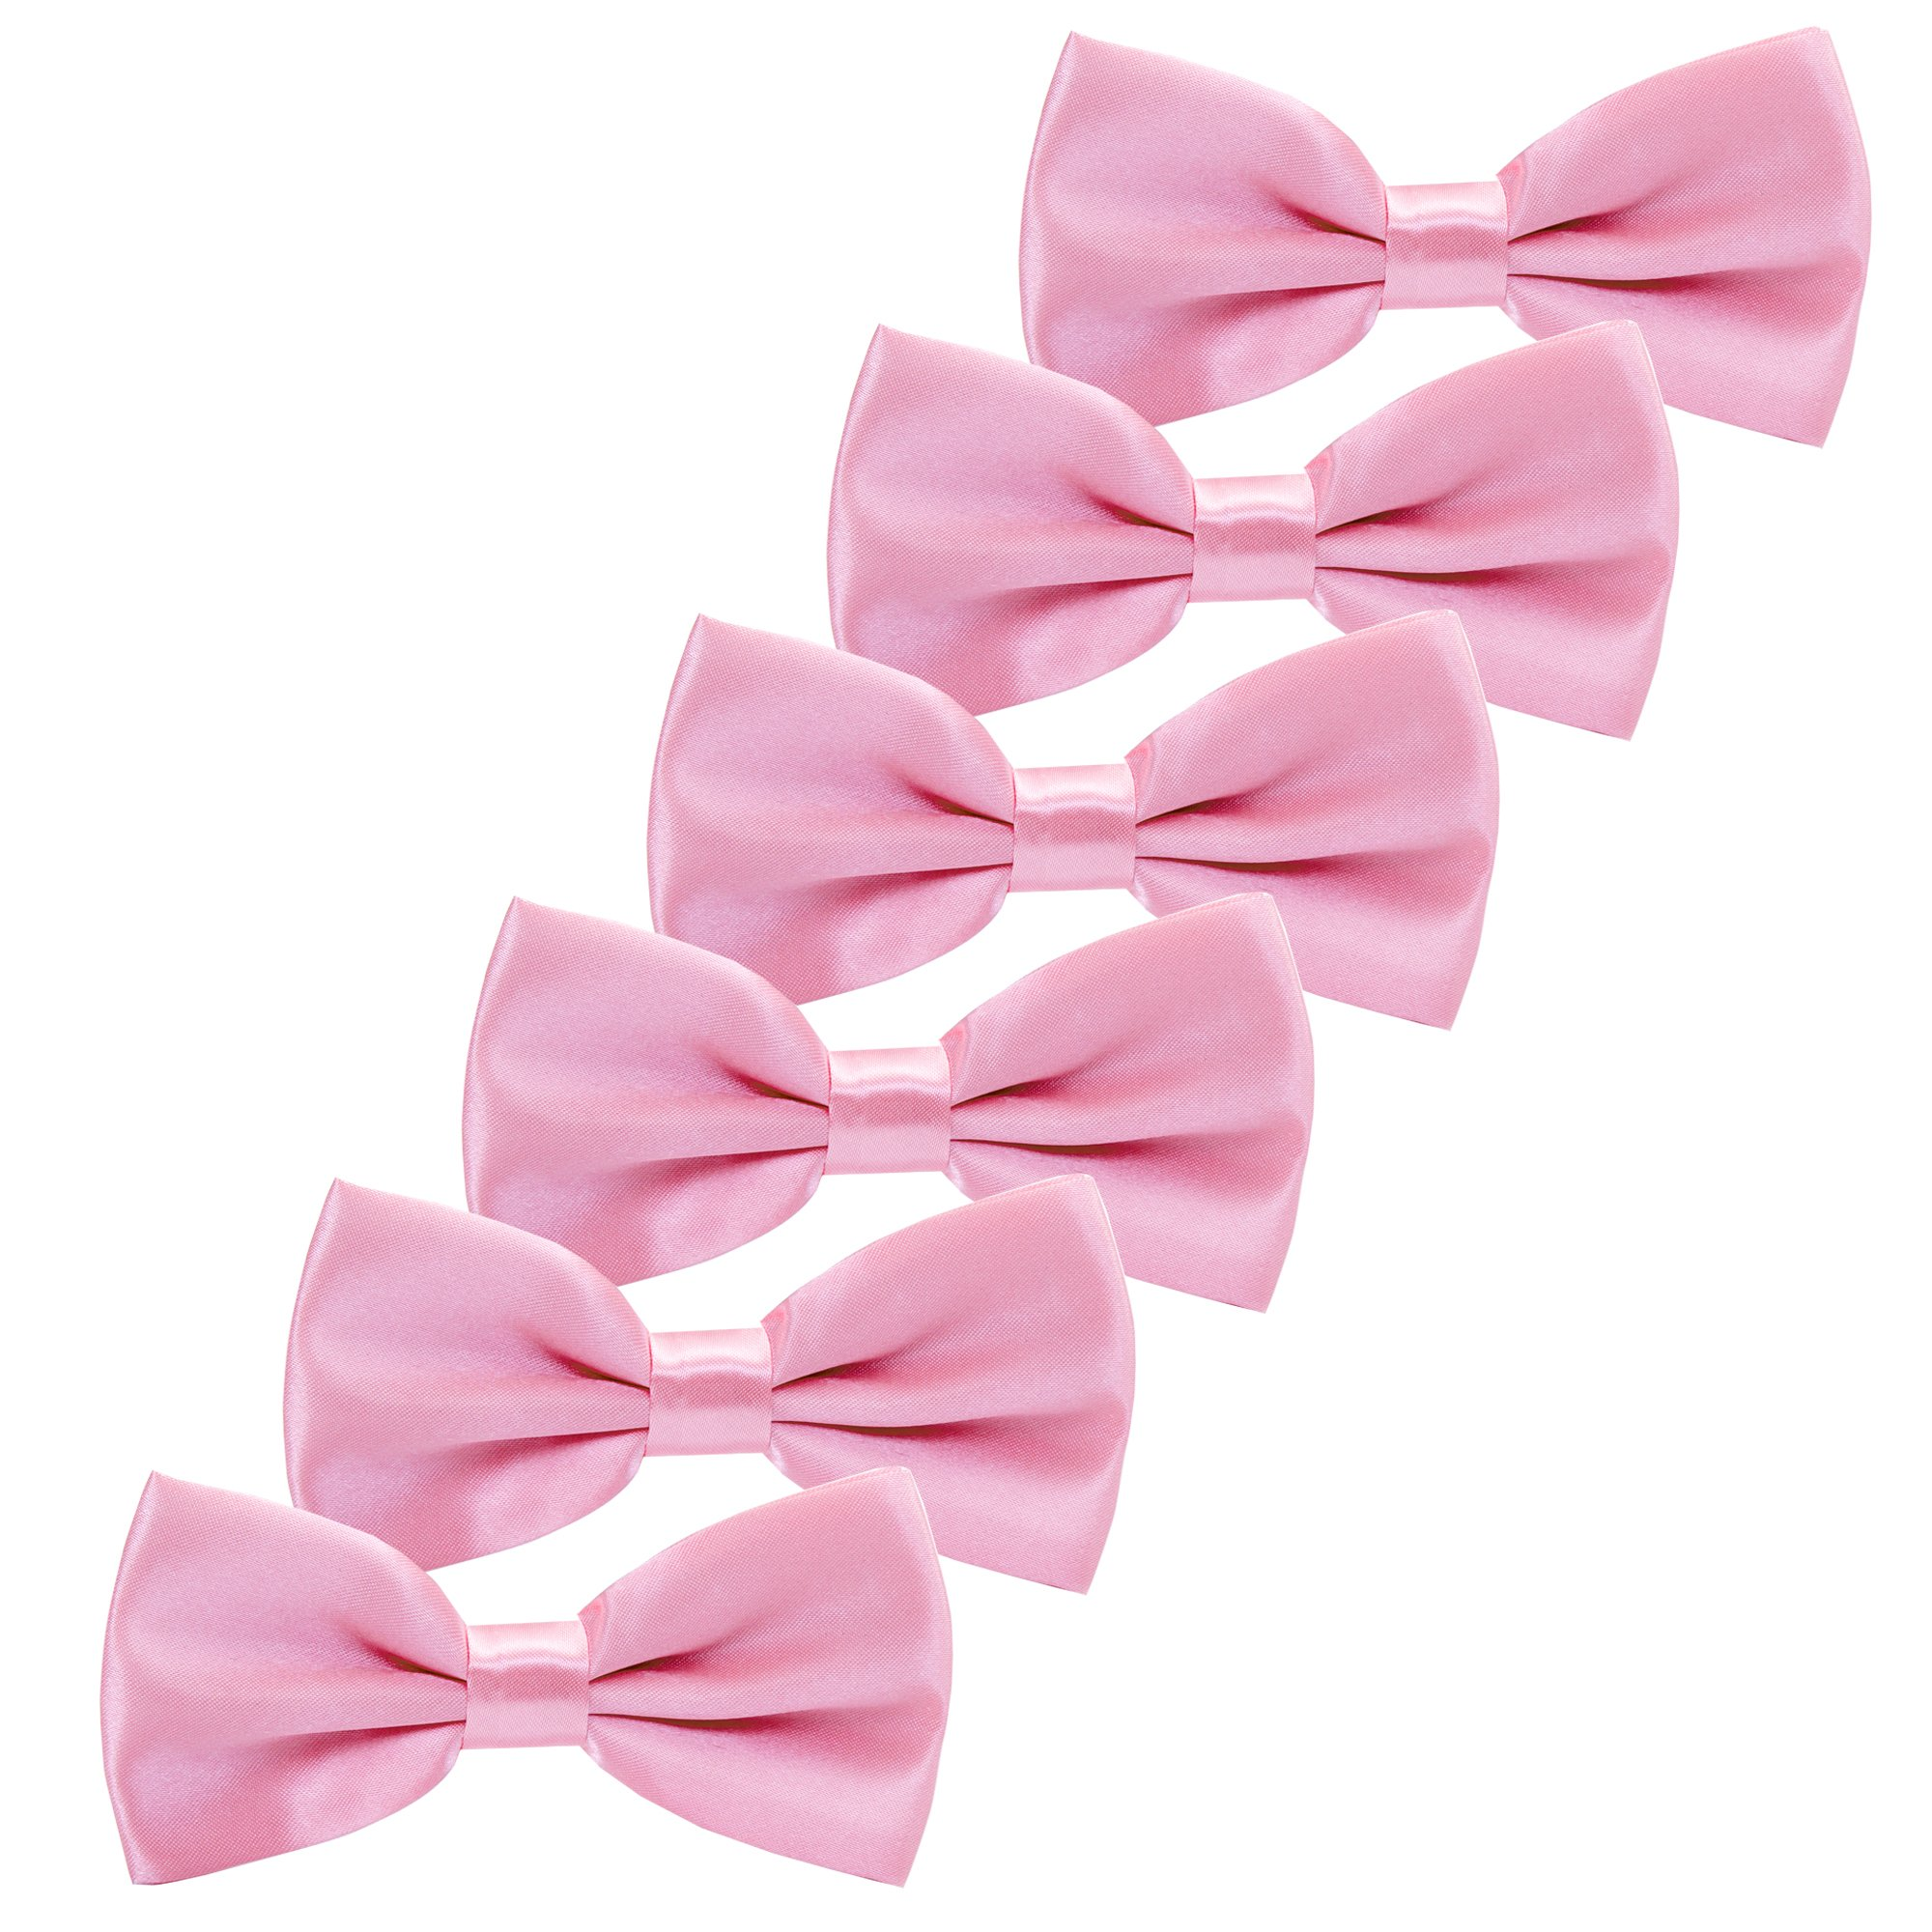 Boys Children Formal Bow Ties - 6 Pack of Solid Color Adjustable Pre Tied Bowties for Wedding Party (Pink)